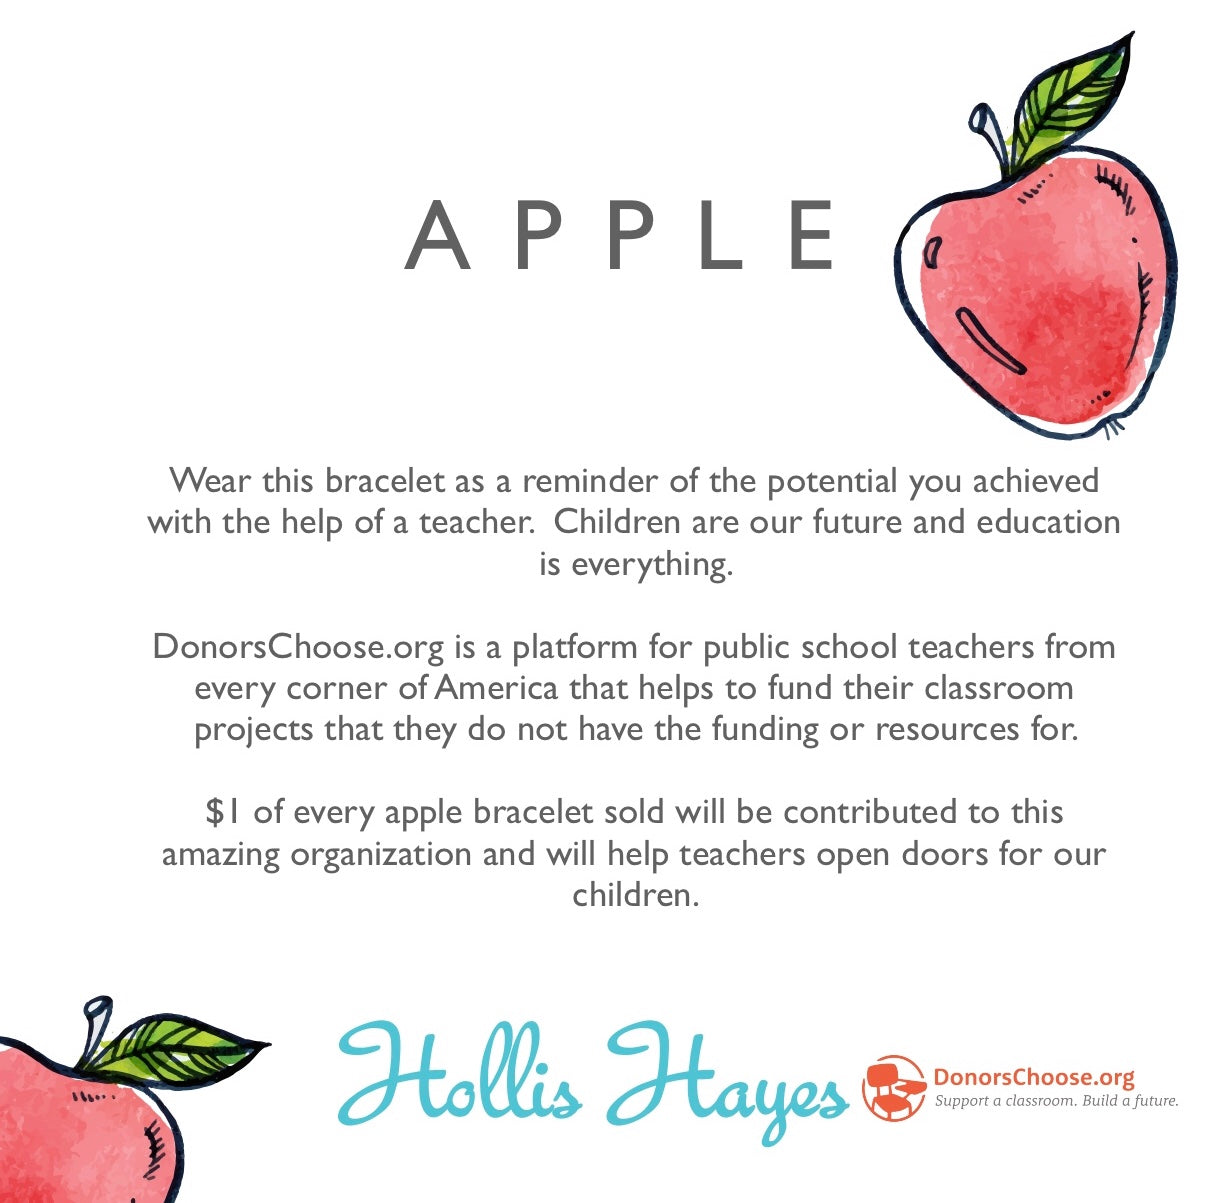 Apple - DonorsChoose.org